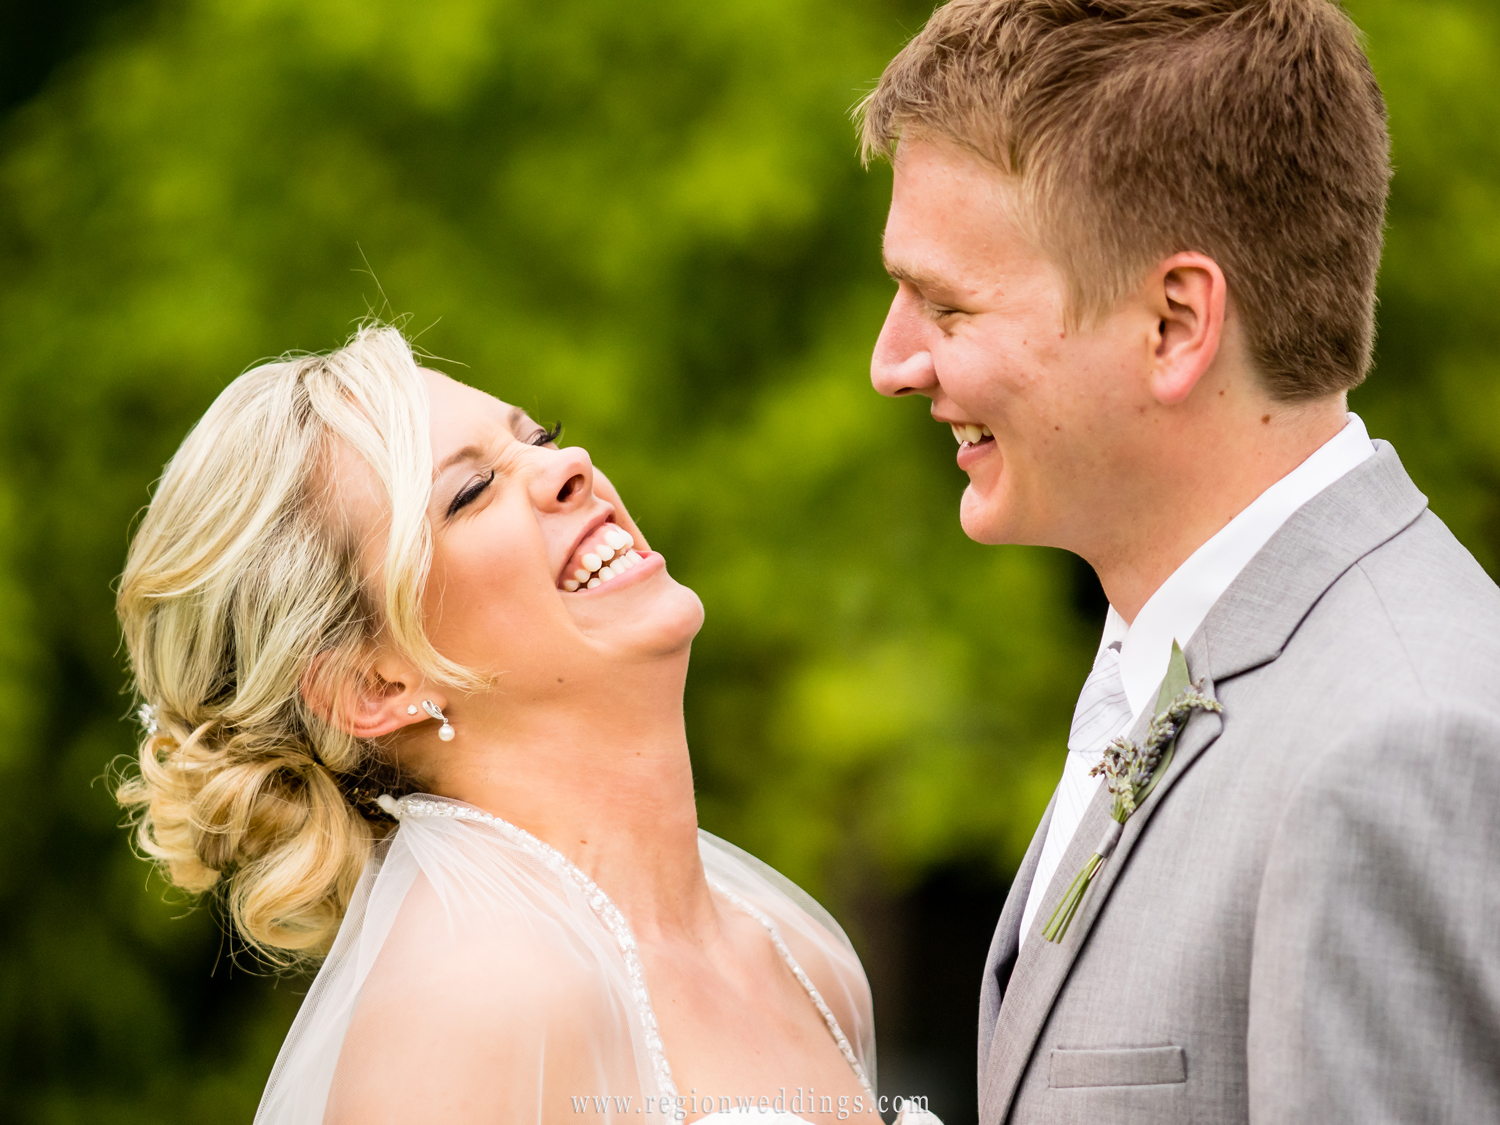 A candid, fun moment between the bride and the groom.